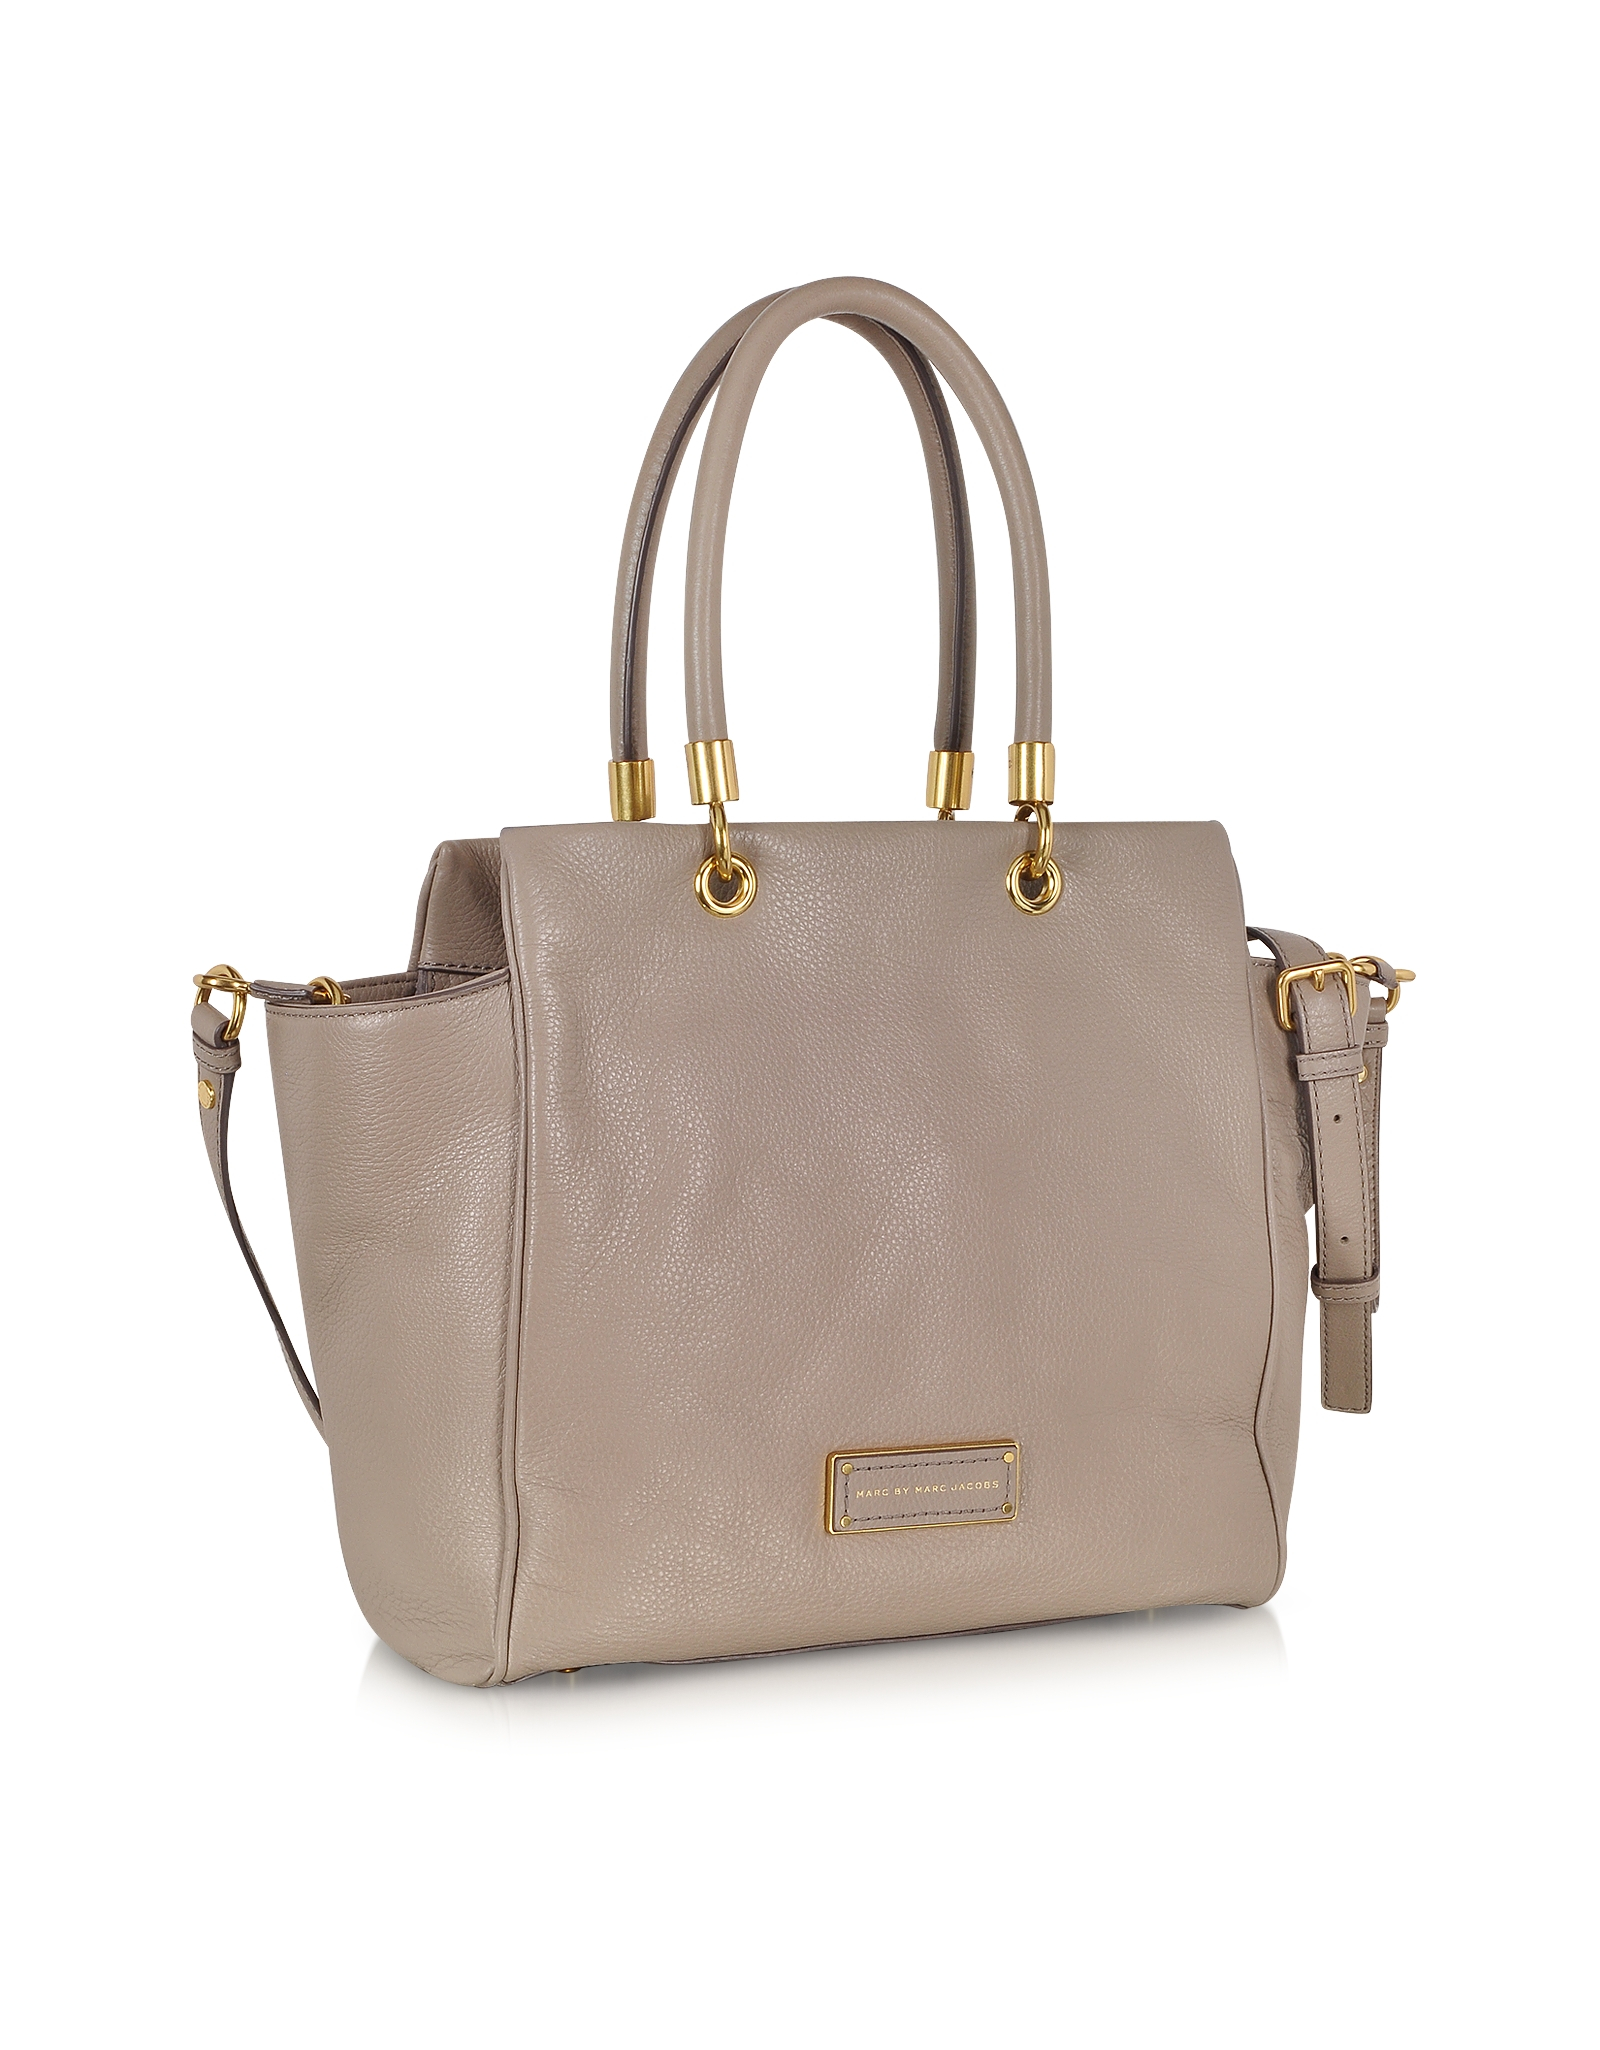 jacobs lyst product best by handle bentley model hot papyrus normal to new bag marc hobo too leather tan